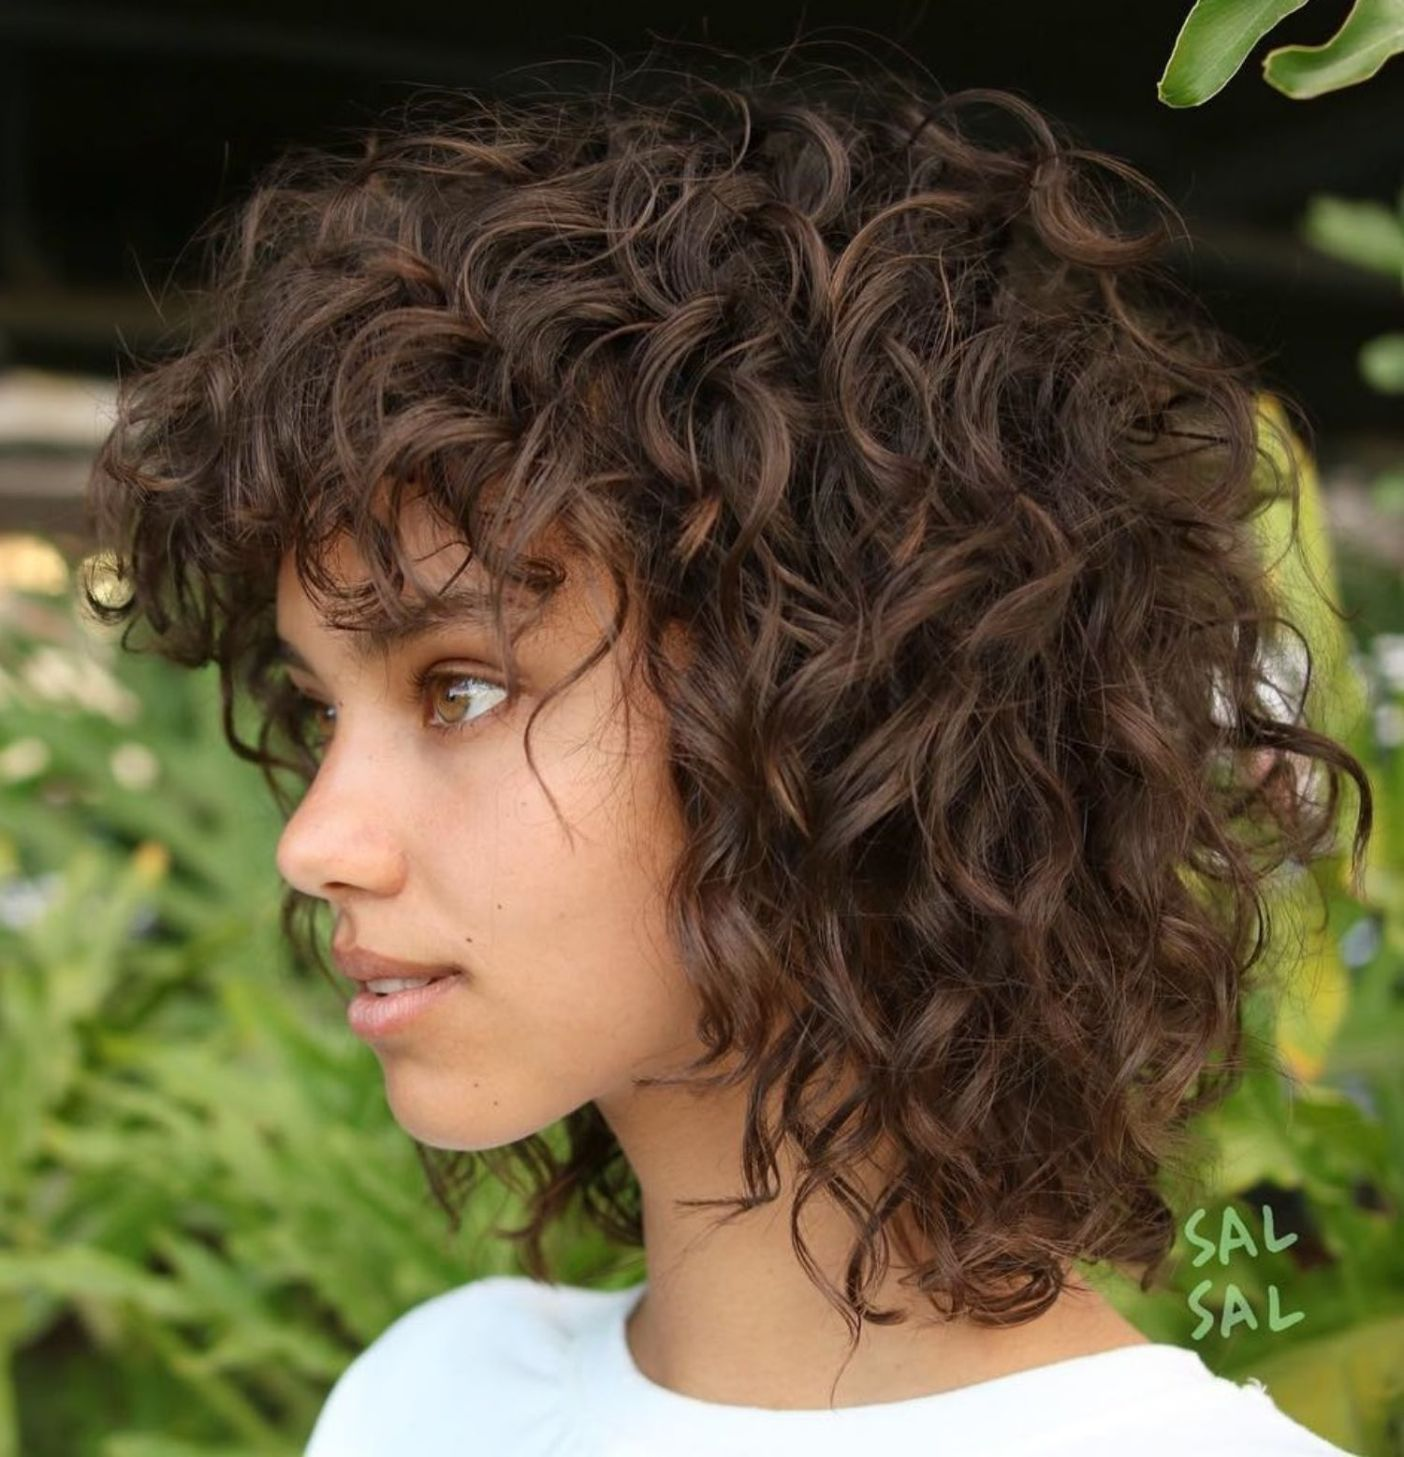 Collarbone Wavy Hairstyle With Bangs Curly Hair Styles Naturally Curly Hair Styles Hair Styles